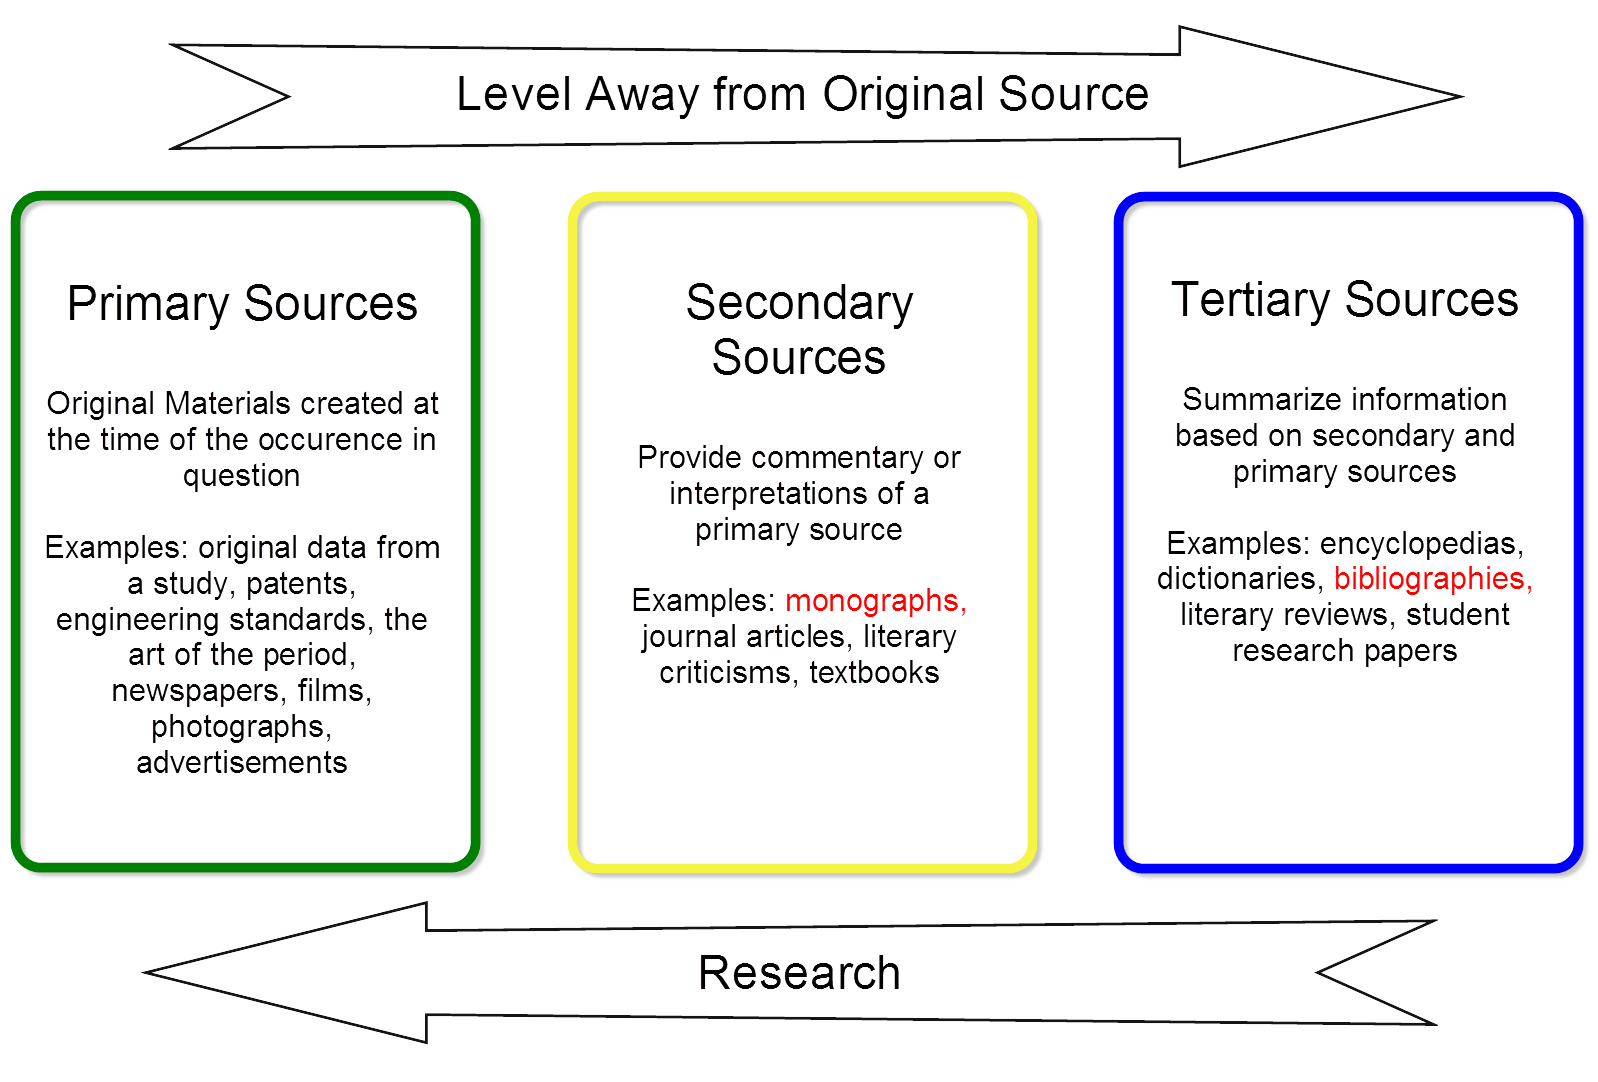 Level Of Origin Graphic Defining Primary Secondary And Tertiary Sources Information Literacy Research Skills Academic Writing